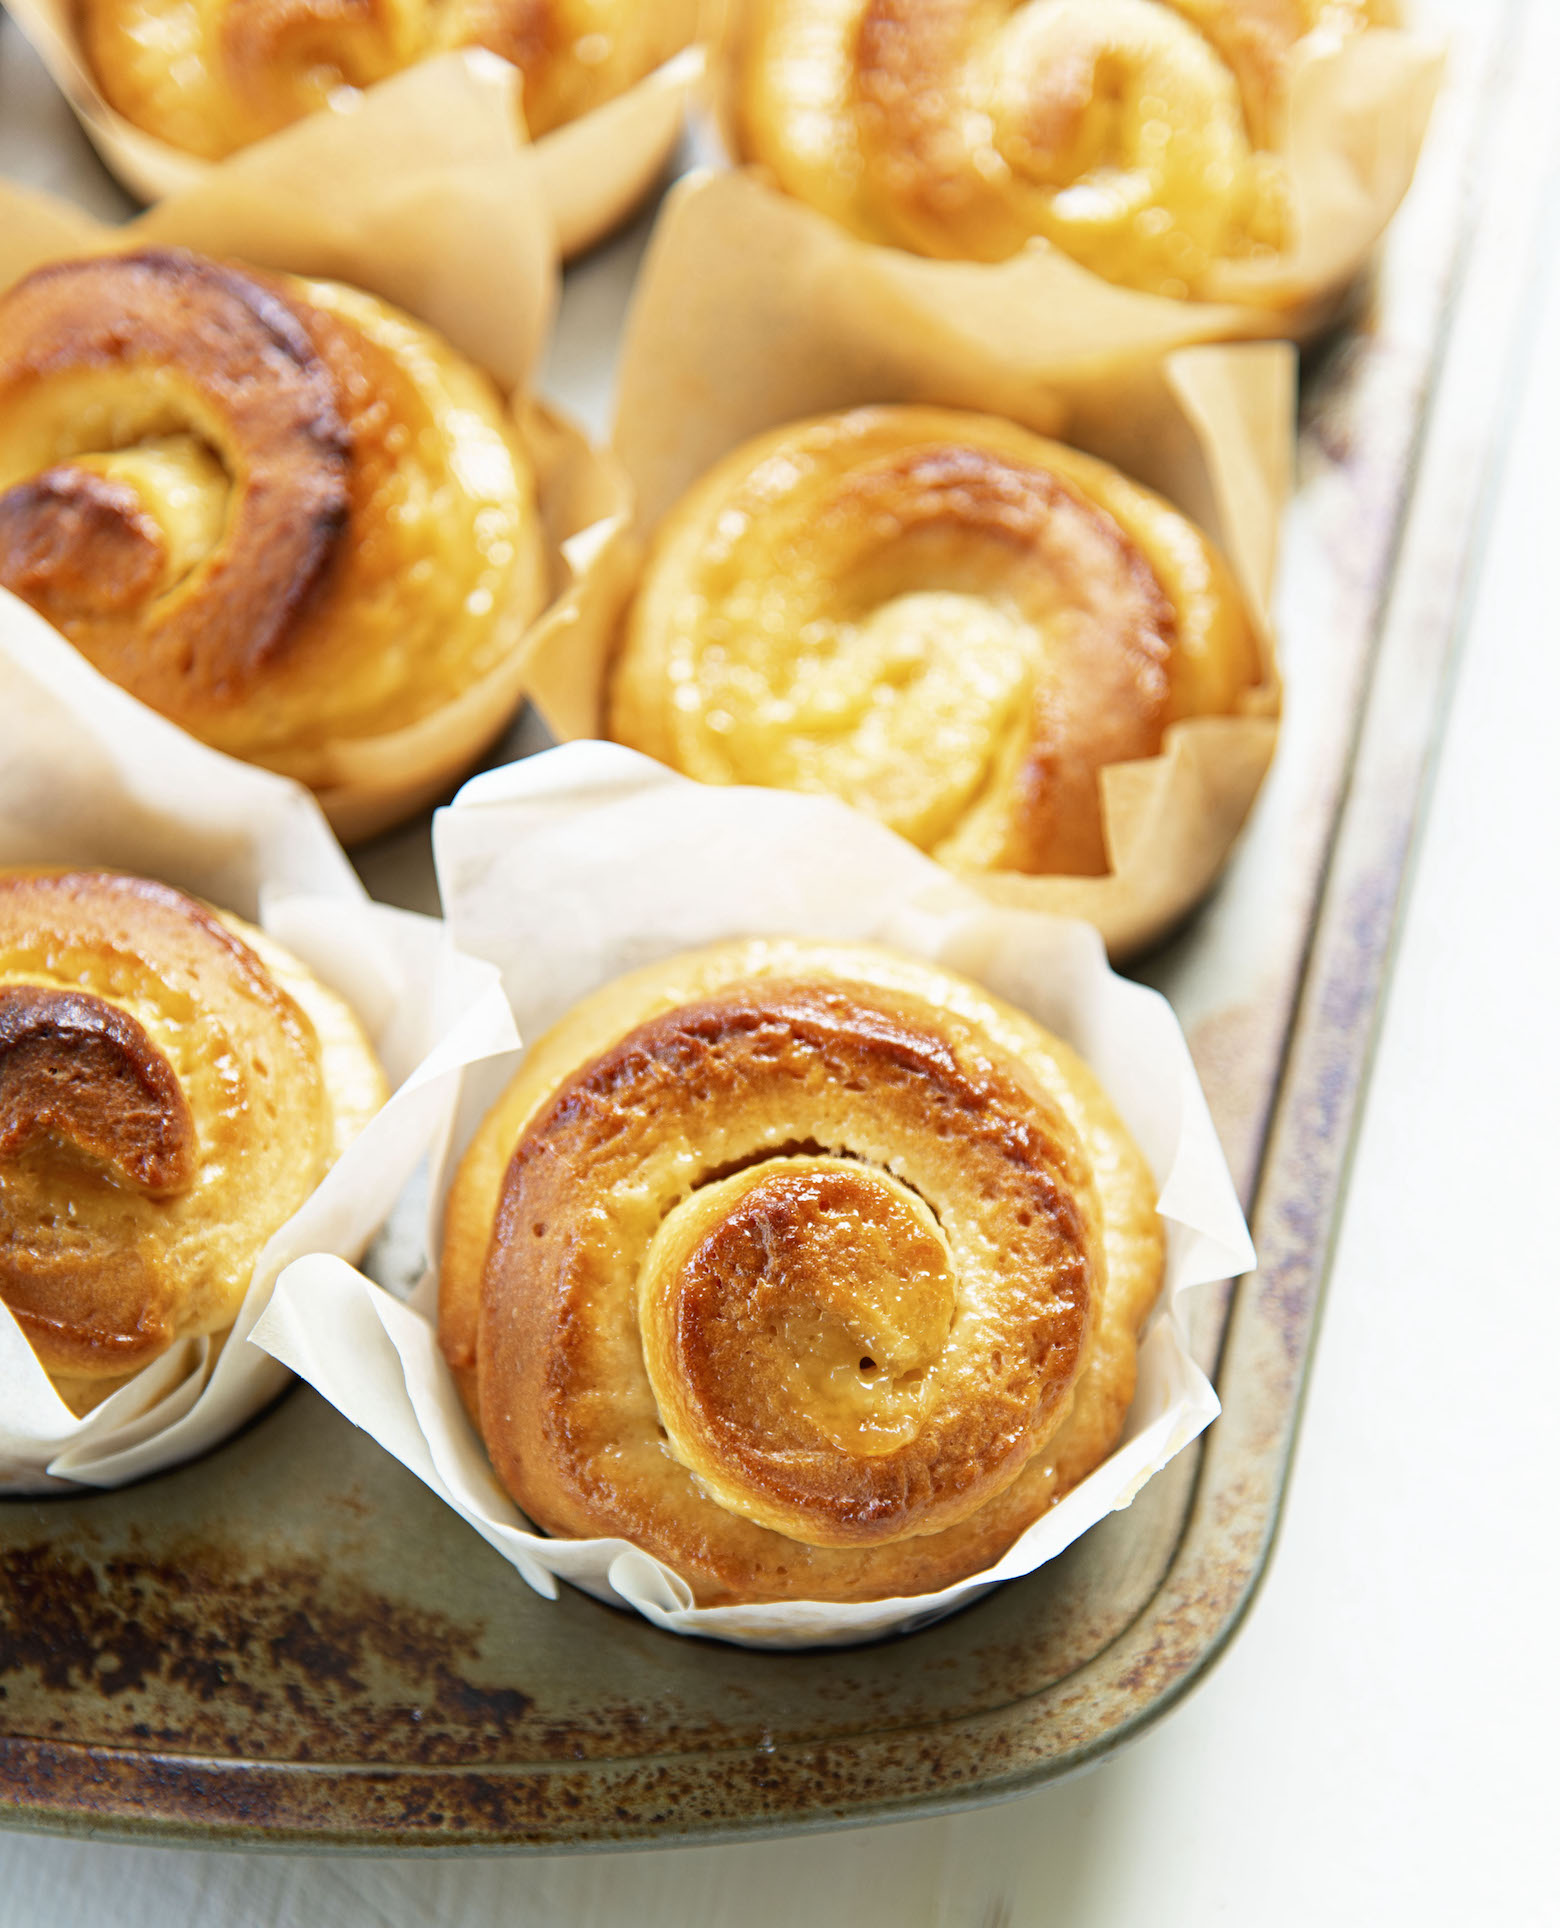 Picture of the rolls still in muffin pan showing the swirls of lemon curd.